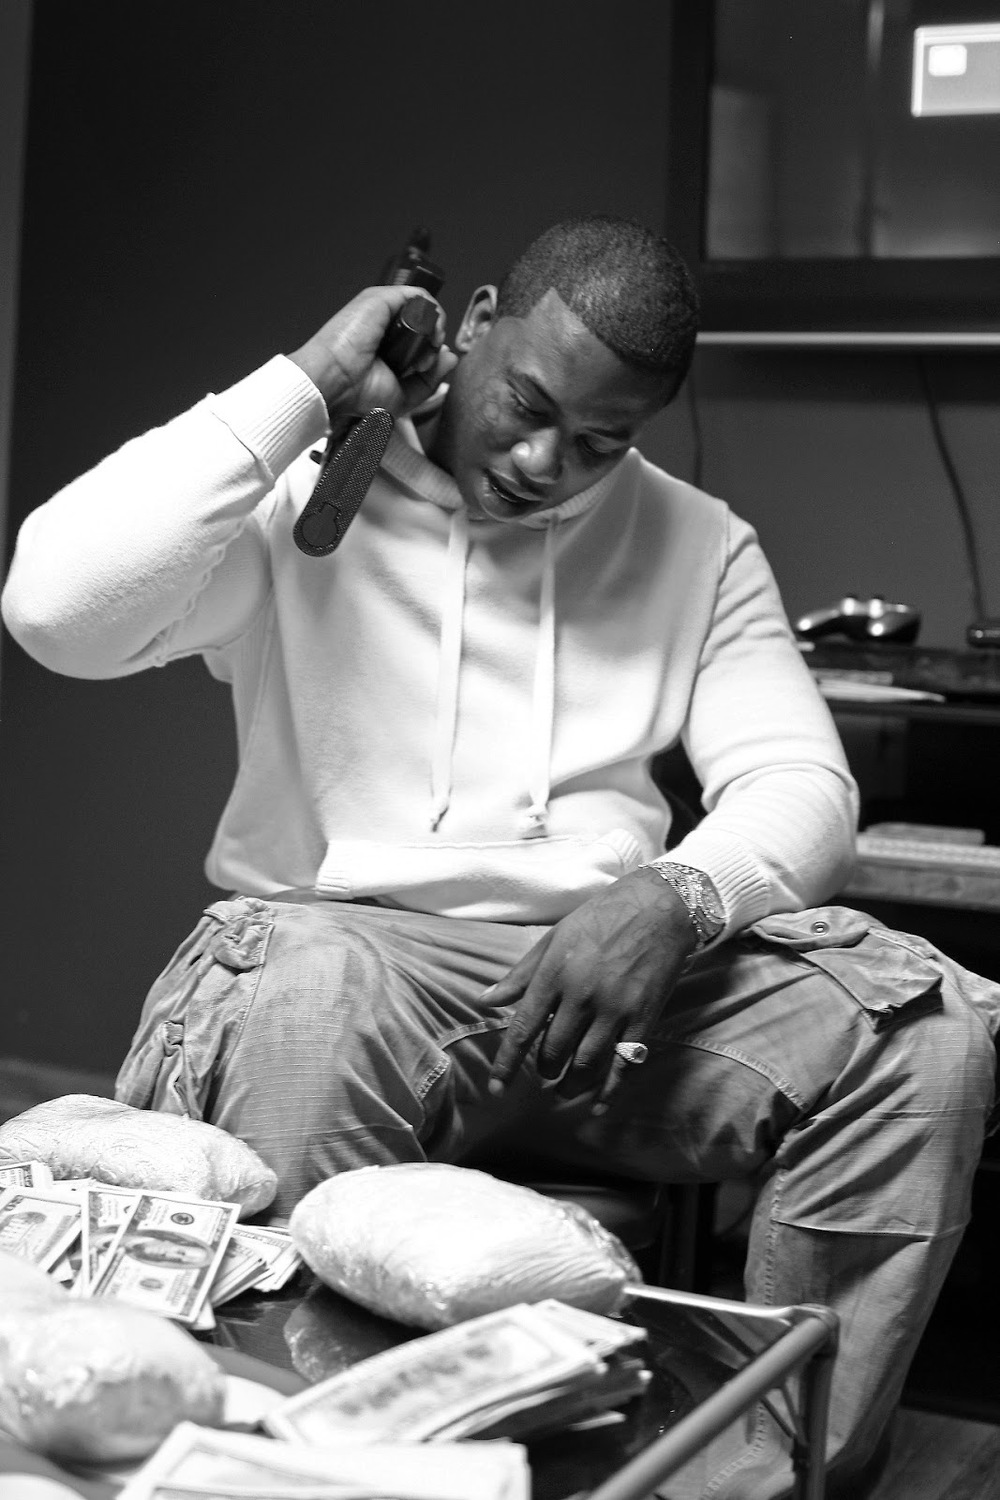 Gucci Mane holding his gun with weed coke and money on the table in front of him.jpg